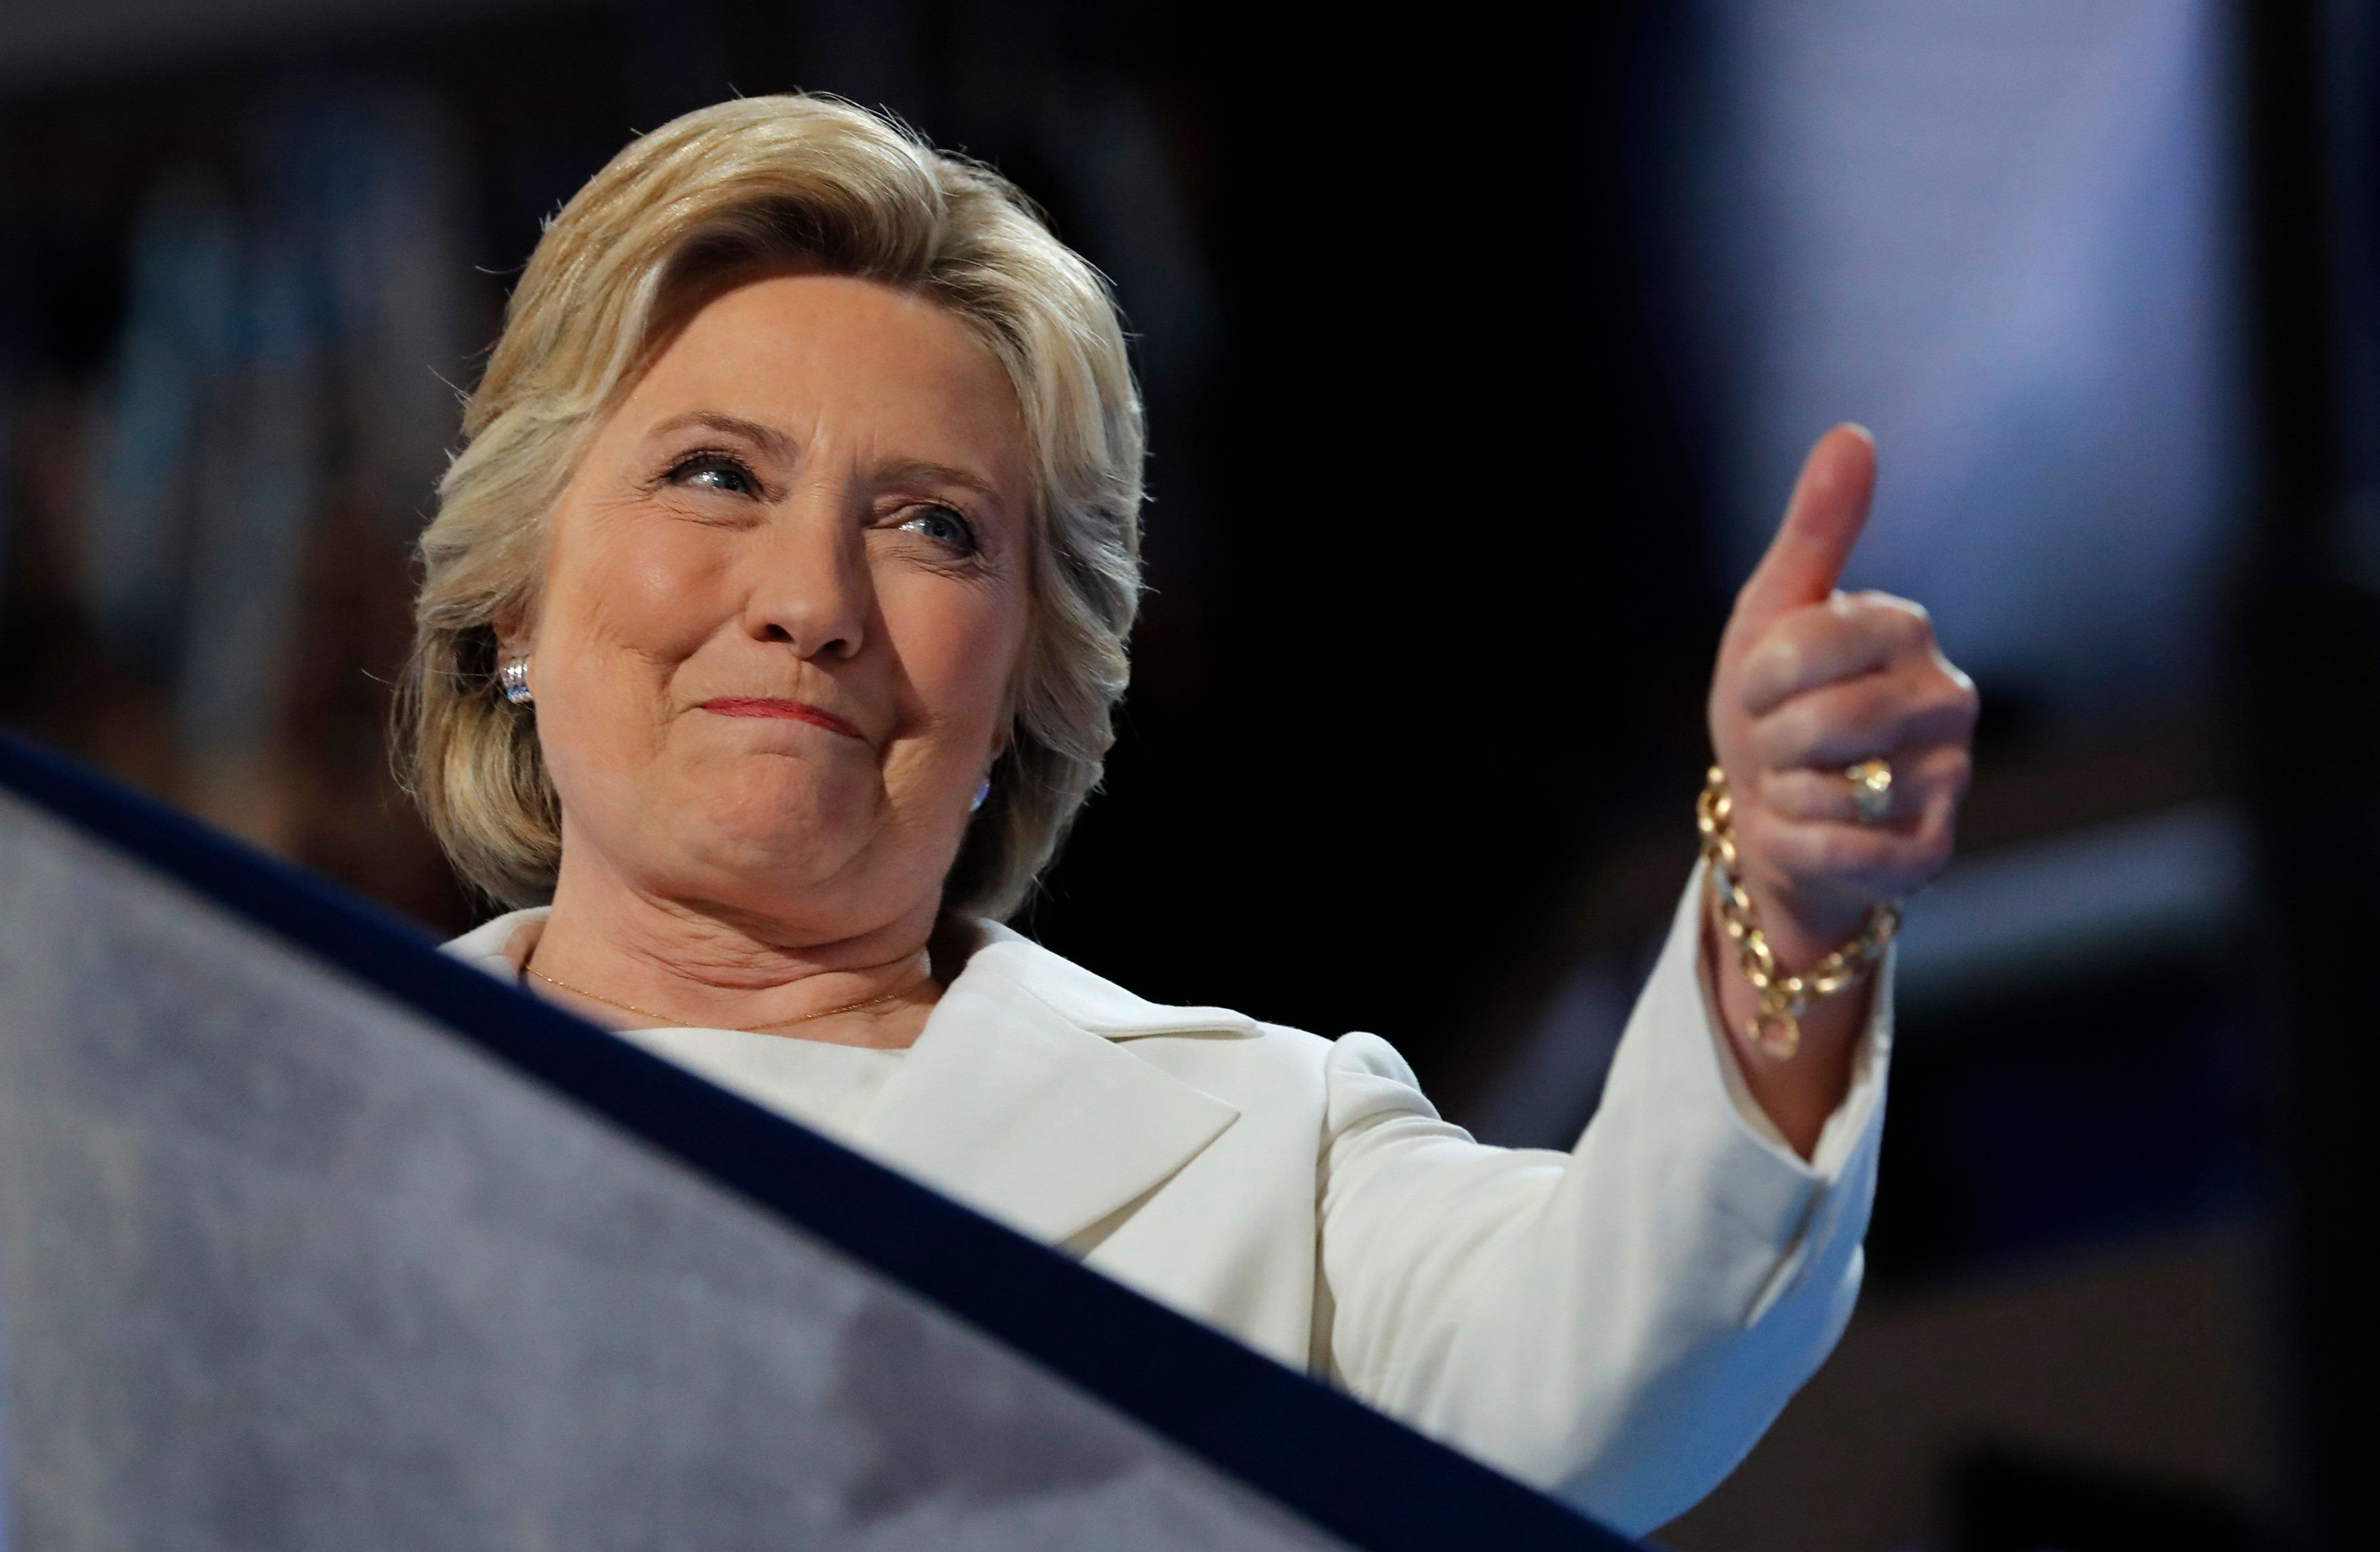 Democratic U.S. presidential nominee Hillary Clinton gives a thumbs up as she arrives to accept the nomination on the fourth and final night at the Democratic National Convention in Philadelphia, Pennsylvania, U.S. July 28, 2016. REUTERS/Jim Young